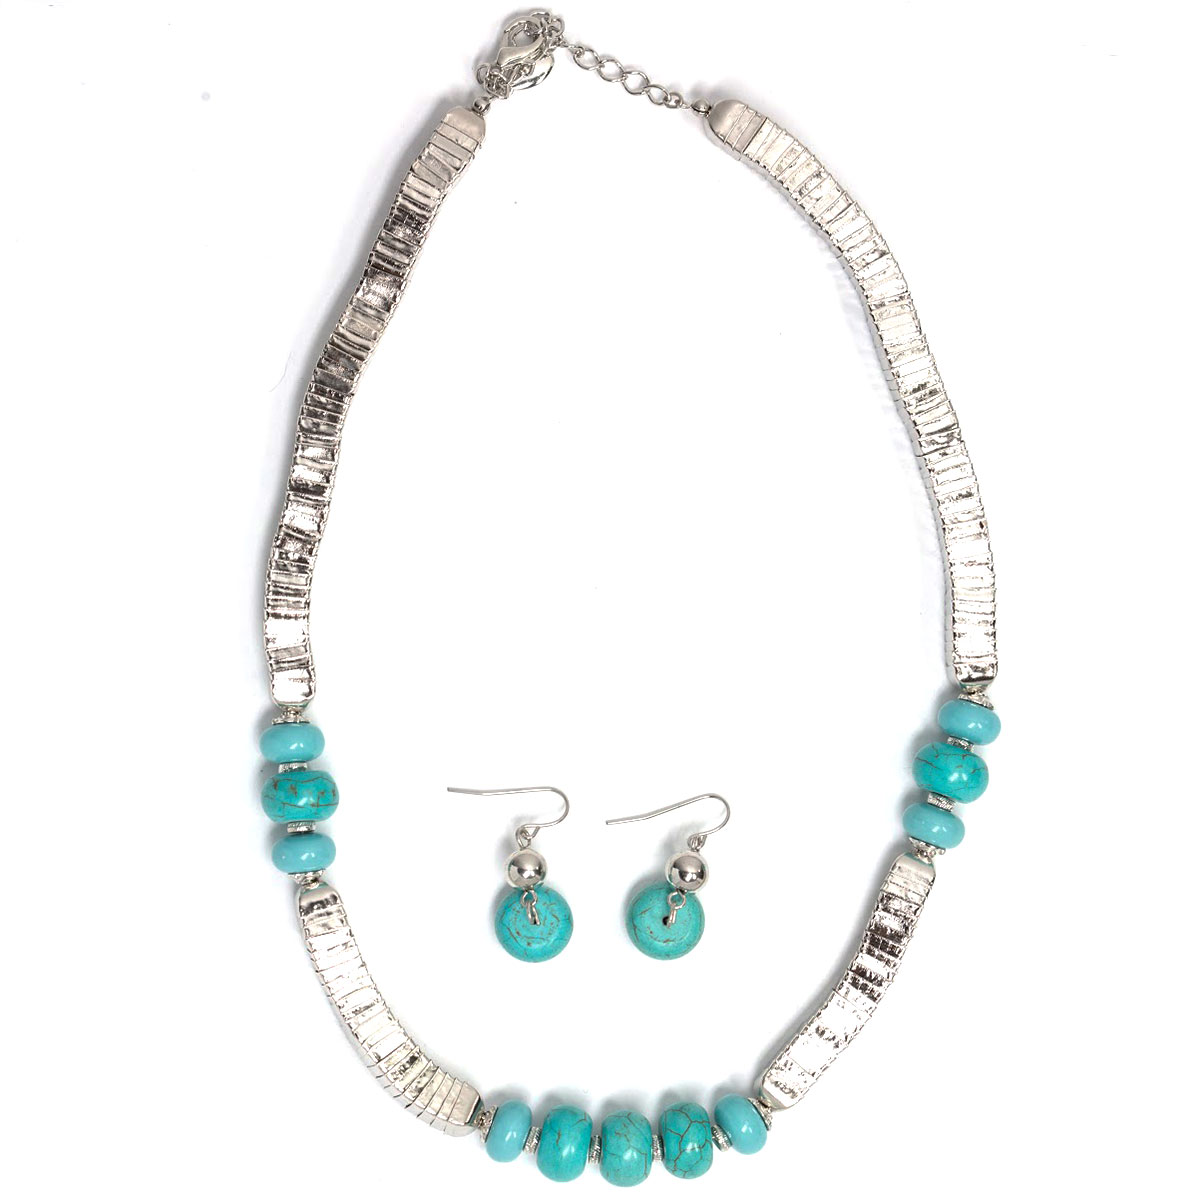 Fashion Necklace & Earring Sets - Silver with Turquoise Stones